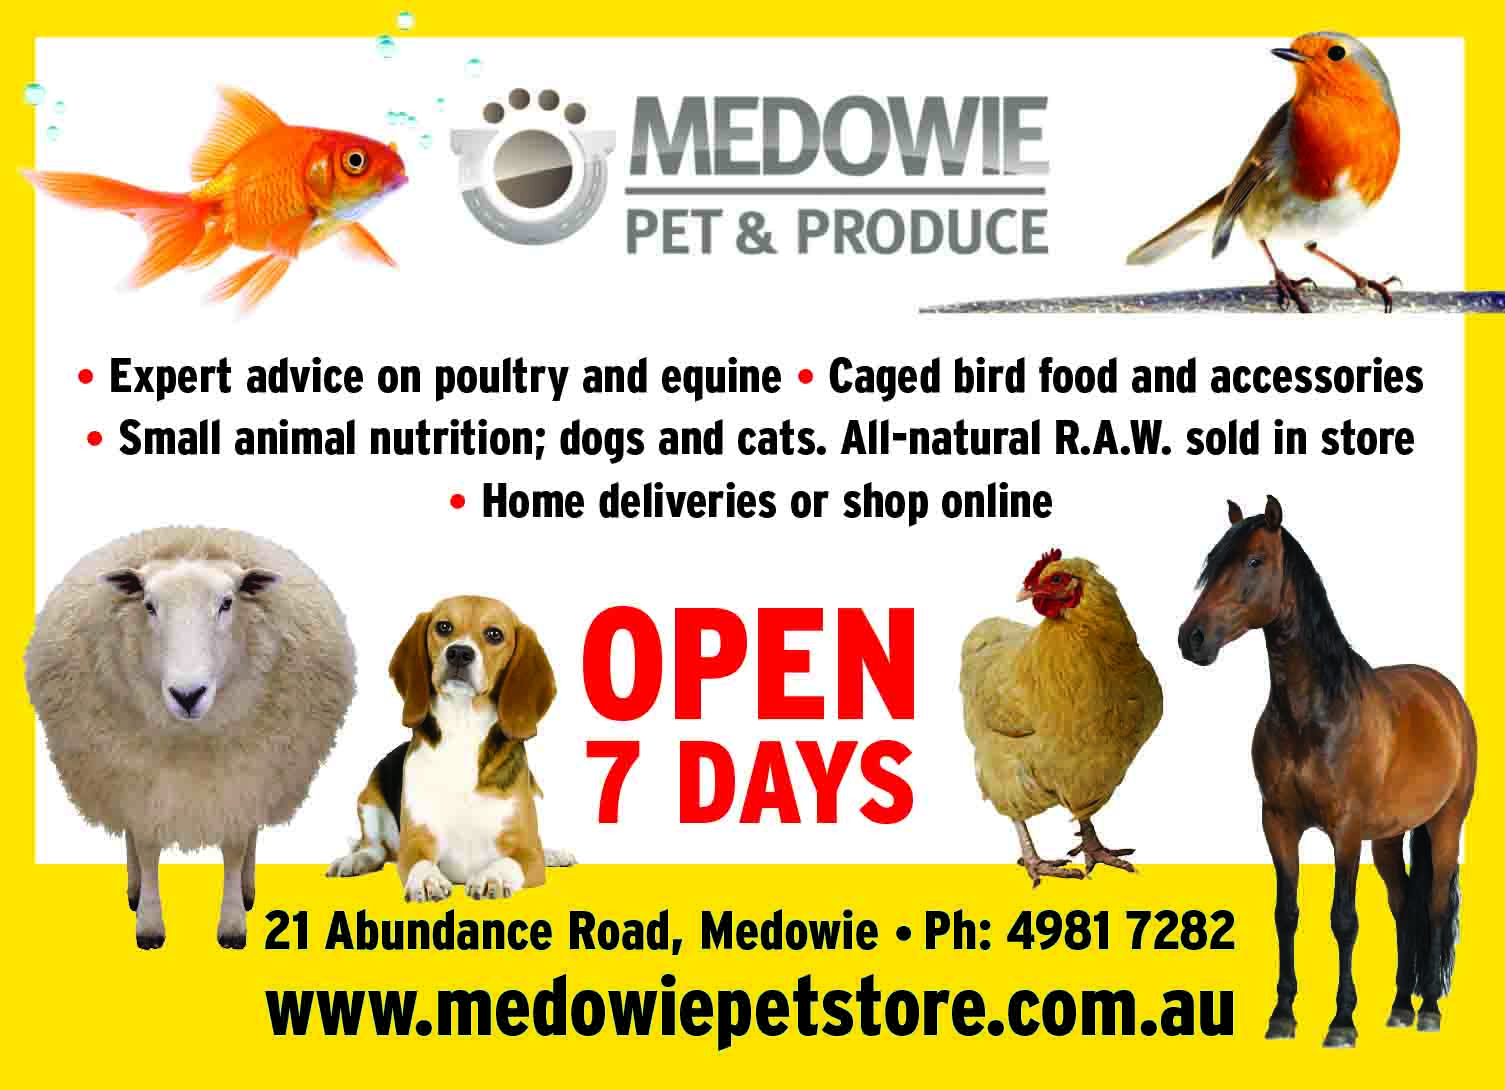 Medowie Pet and Produce